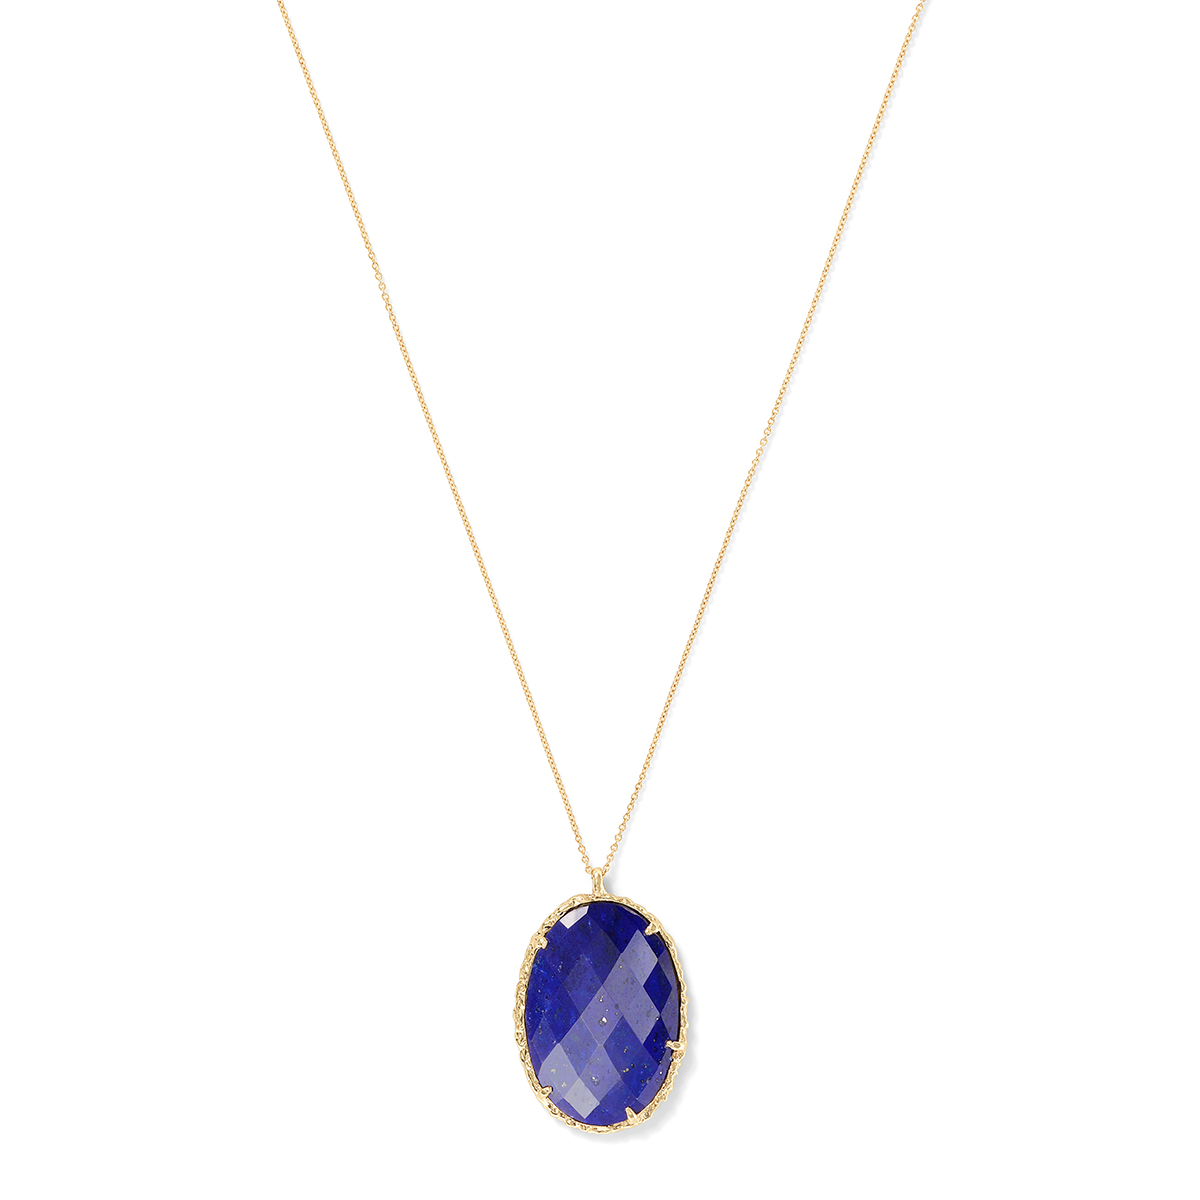 Taryn-Toomey-Airlume-Free-Form-Lapis-Necklace.jpg